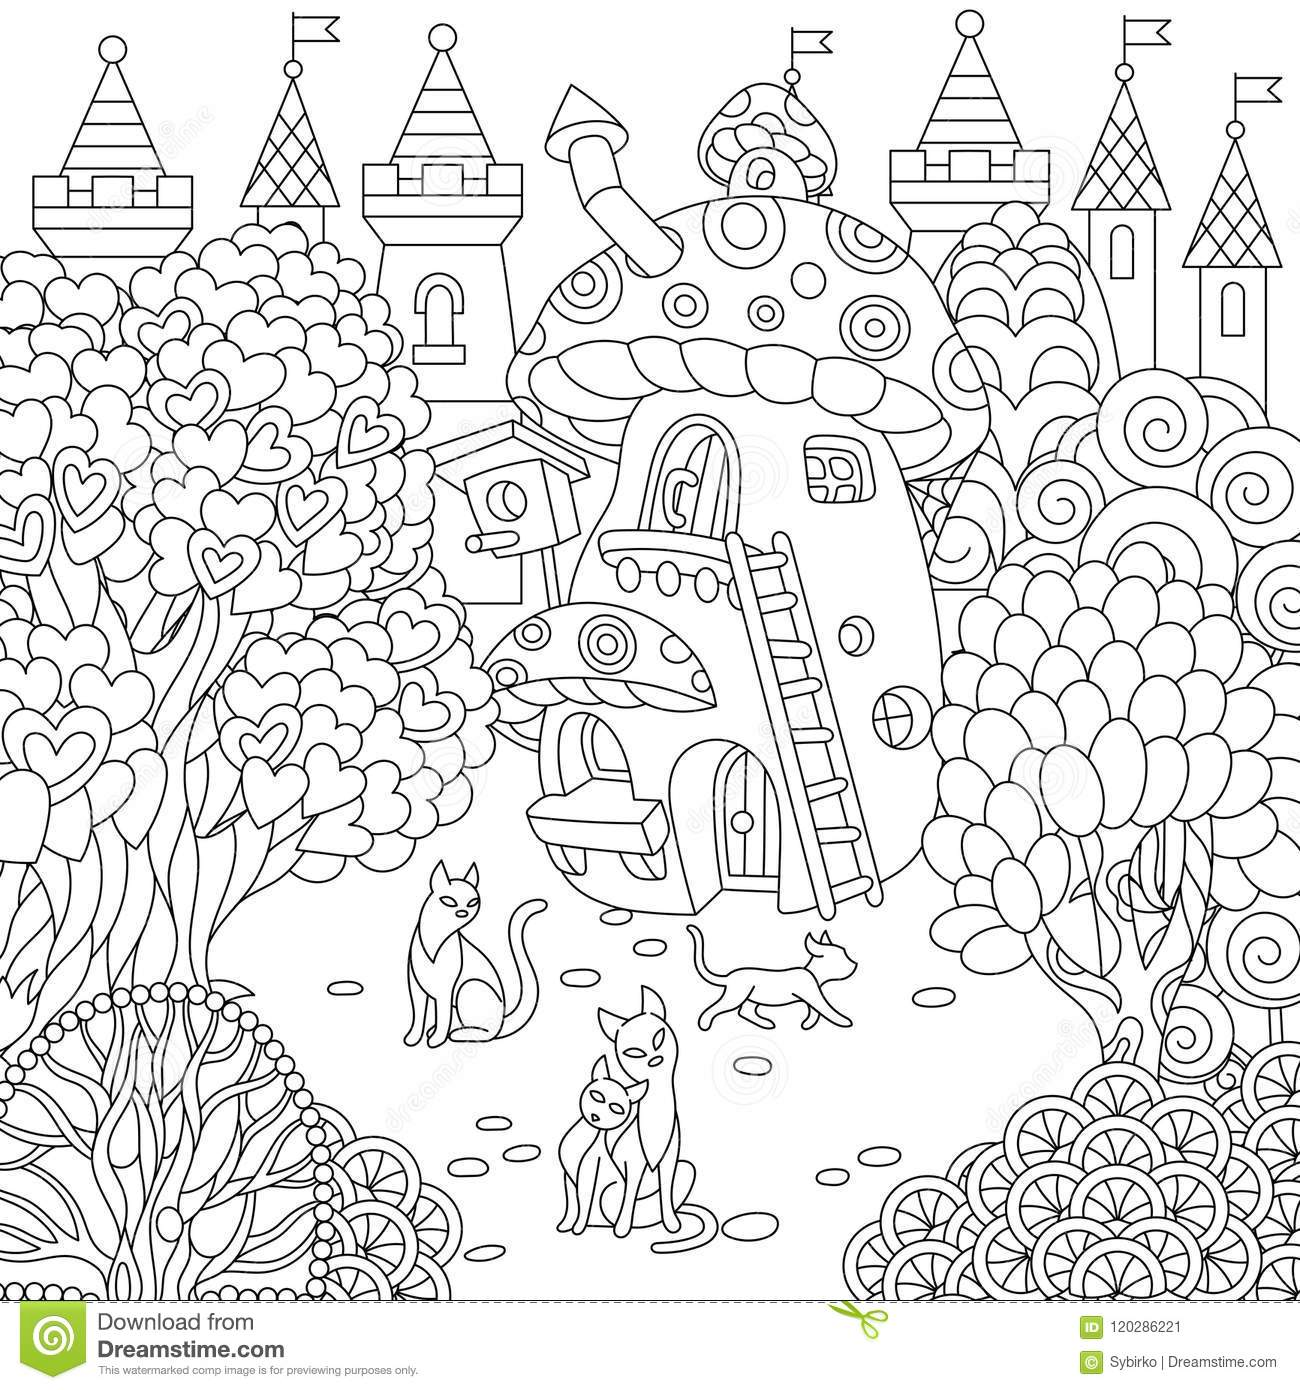 Fantasy town fairytale mushroom house magic heart shaped trees and cats coloring page colouring picture coloring book freehand sketch drawing